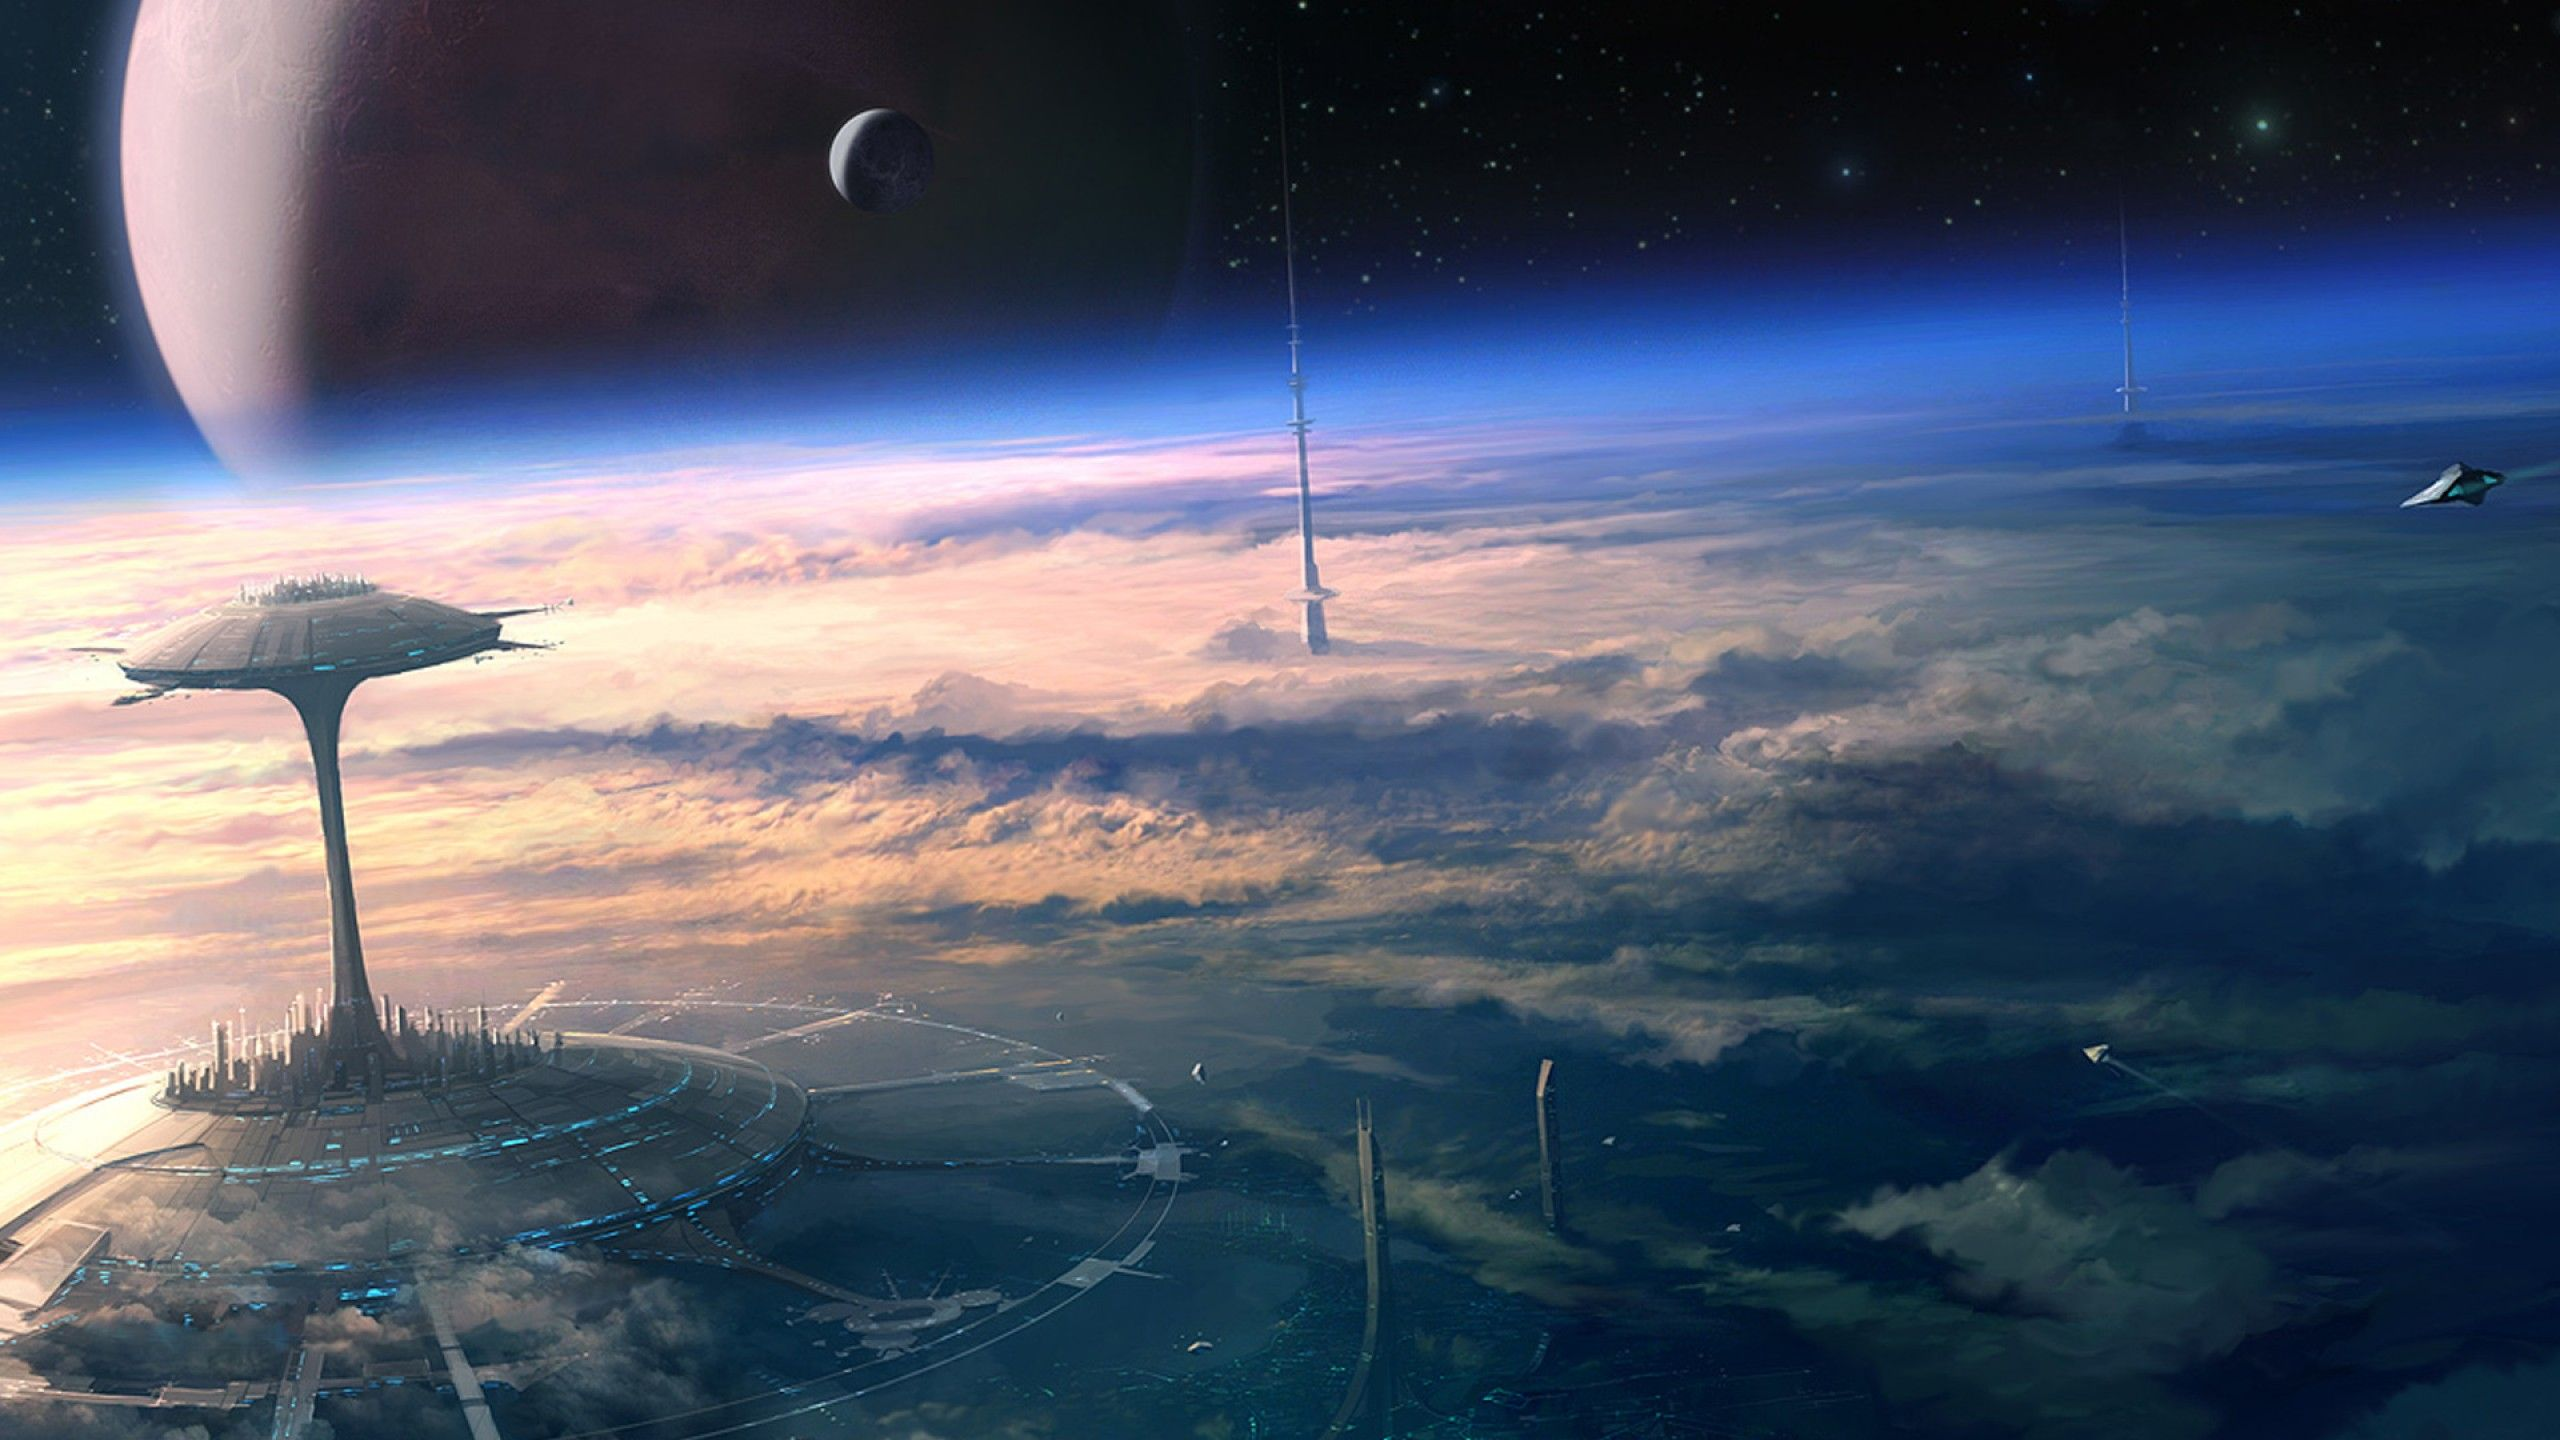 Fantasy Sci Fi Wallpaper for PC Full HD Pictures feelgrafix